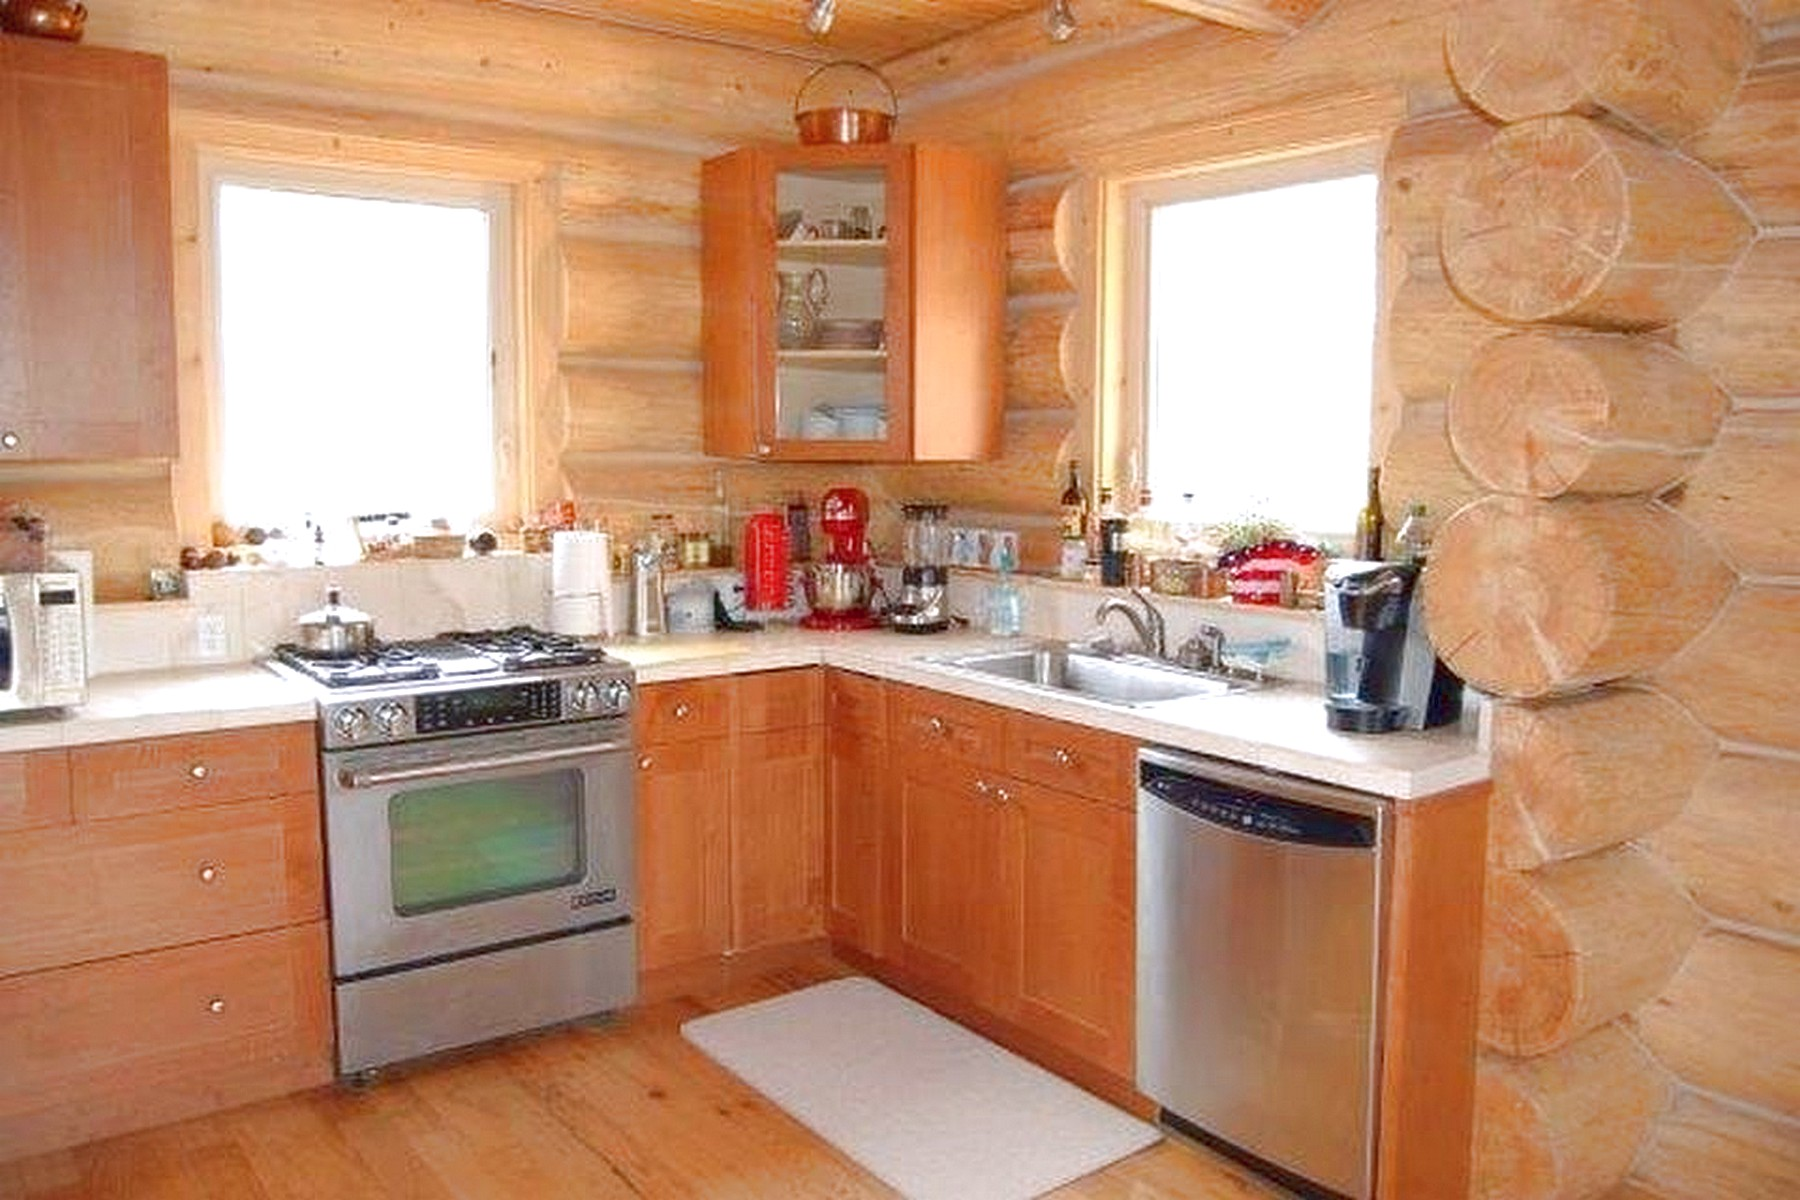 Additional photo for property listing at 76 Circle R , East Glacier Park, MT 59434 76  Circle R East Glacier Park, Montana 59434 United States